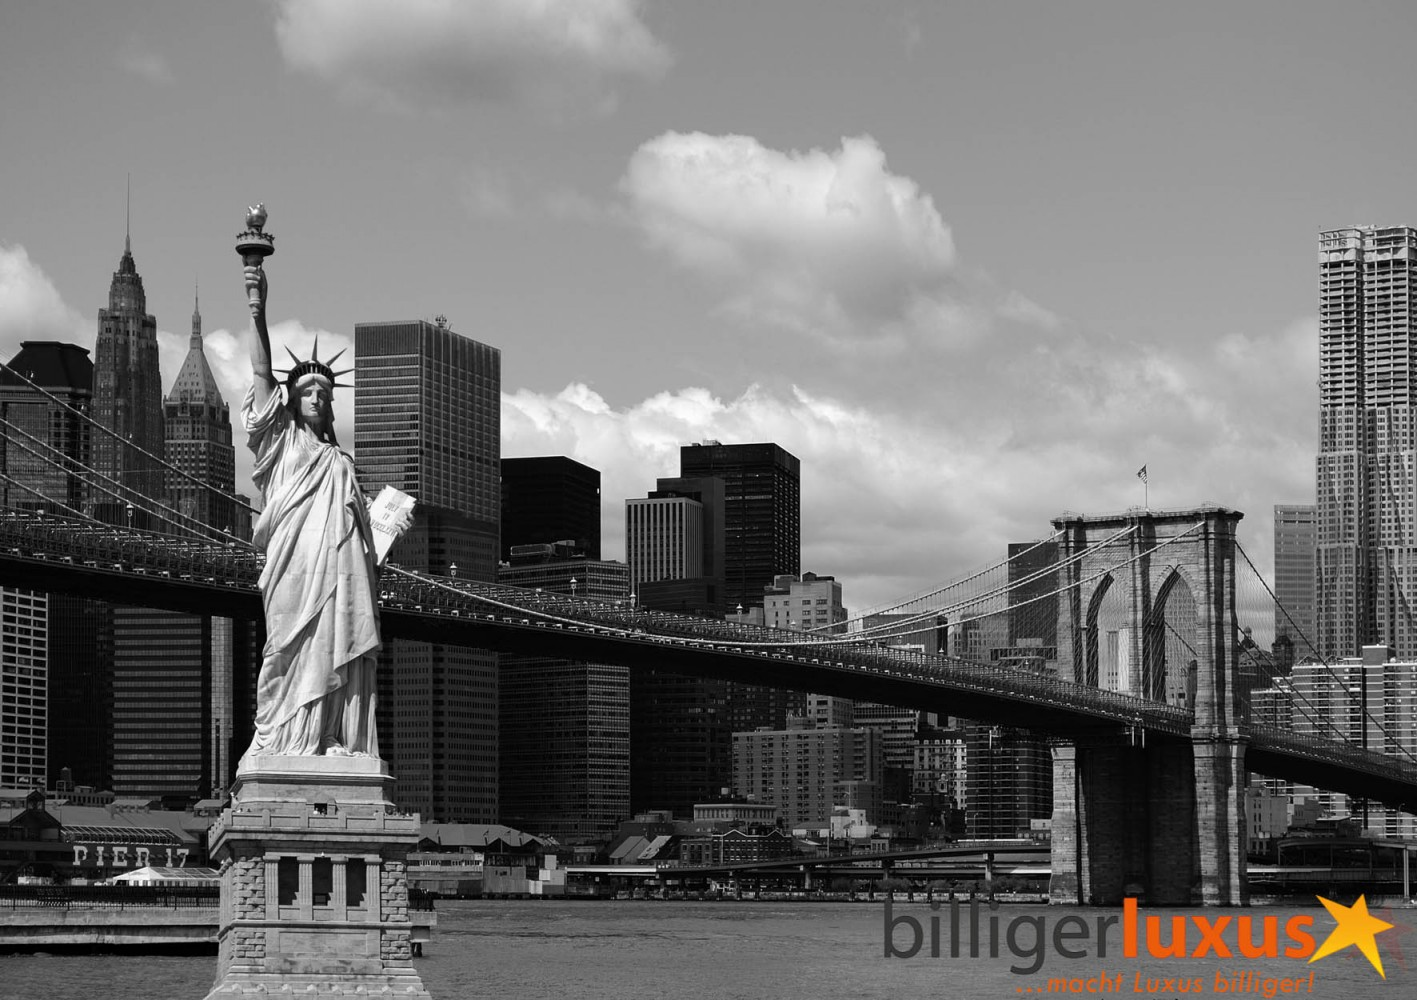 wall mural wallpaper brooklyn bridge statue of liberty new york wall mural wallpaper brooklyn bridge statue of liberty new york black white photo 360 cm x 254 cm 3 94 yd x 2 78 yd